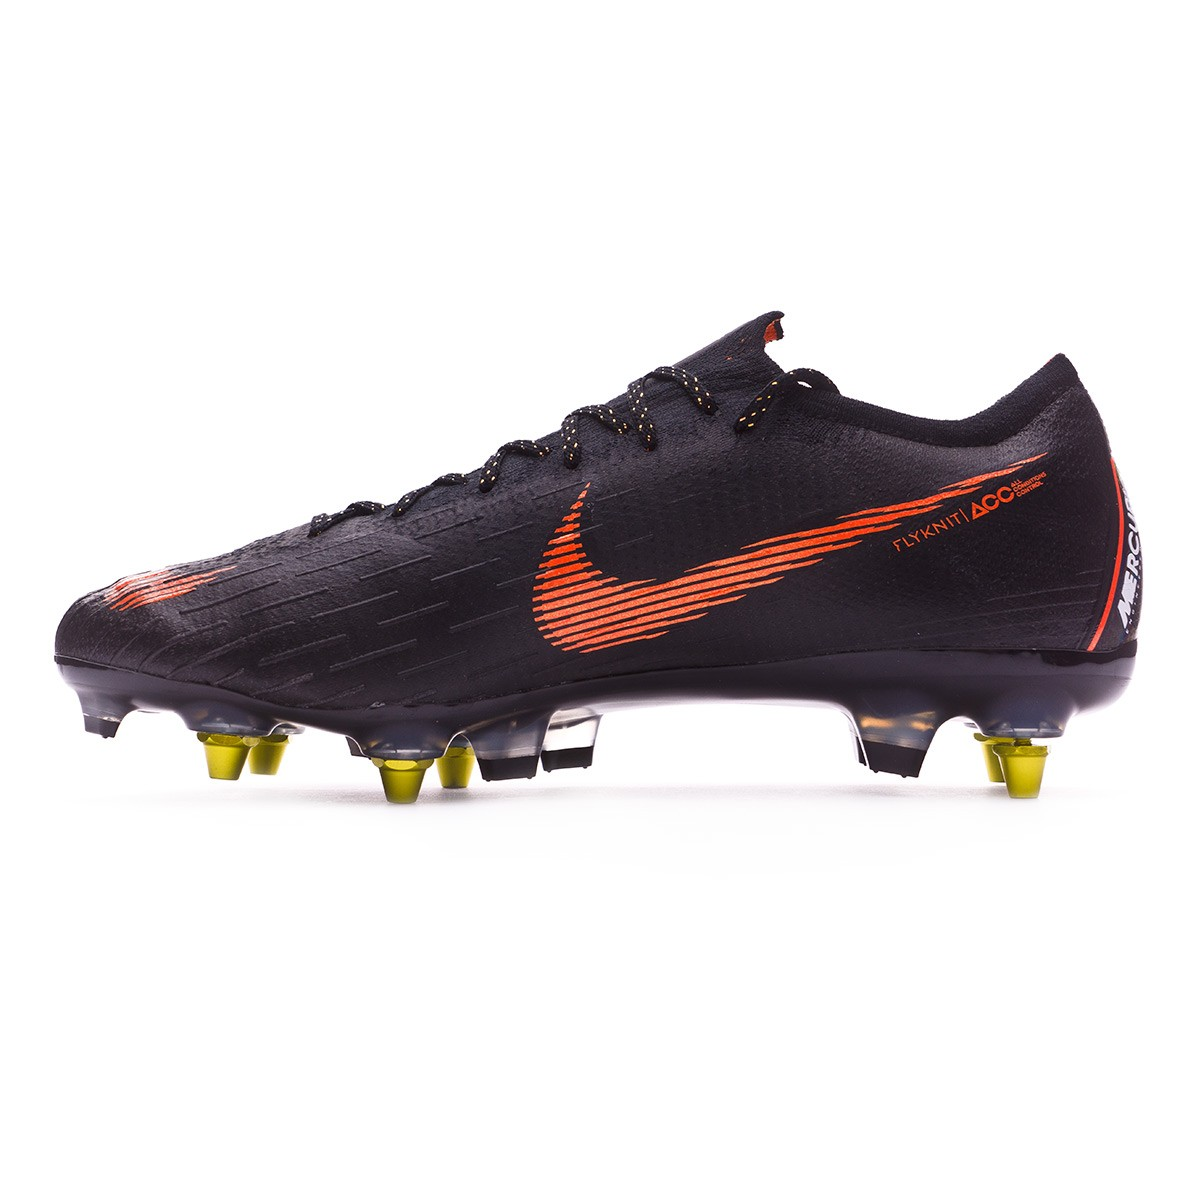 on sale 68a1c d398b Football Boots Nike Mercurial Vapor XII Elite SG-Pro Anti-Clog Black-Total  orange-White - Football store Fútbol Emotion